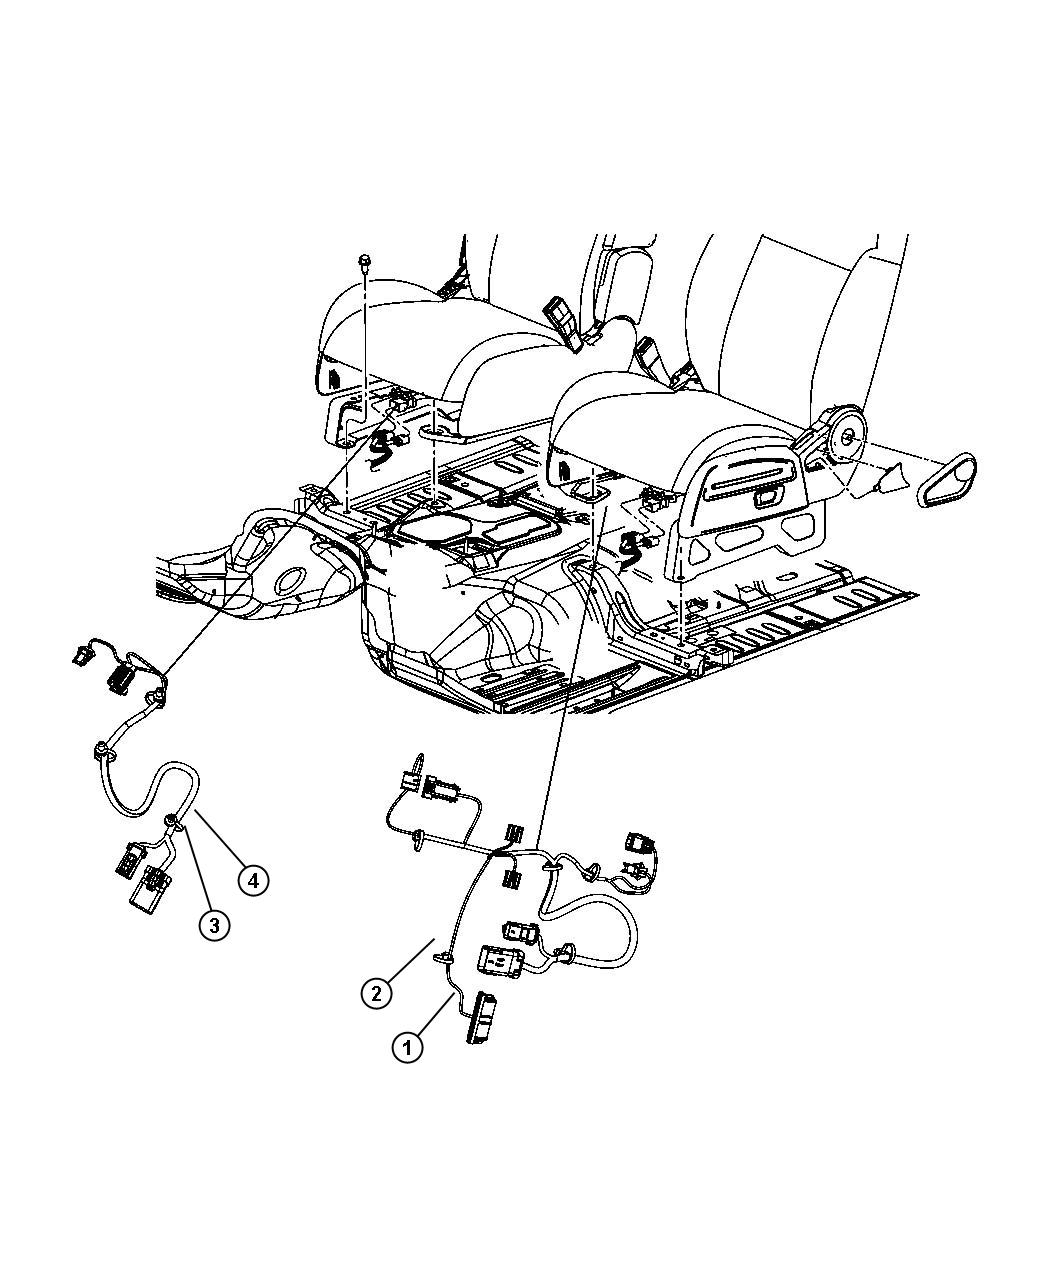 2005 jeep liberty starter wiring diagram 7 pin wire heated seat auto